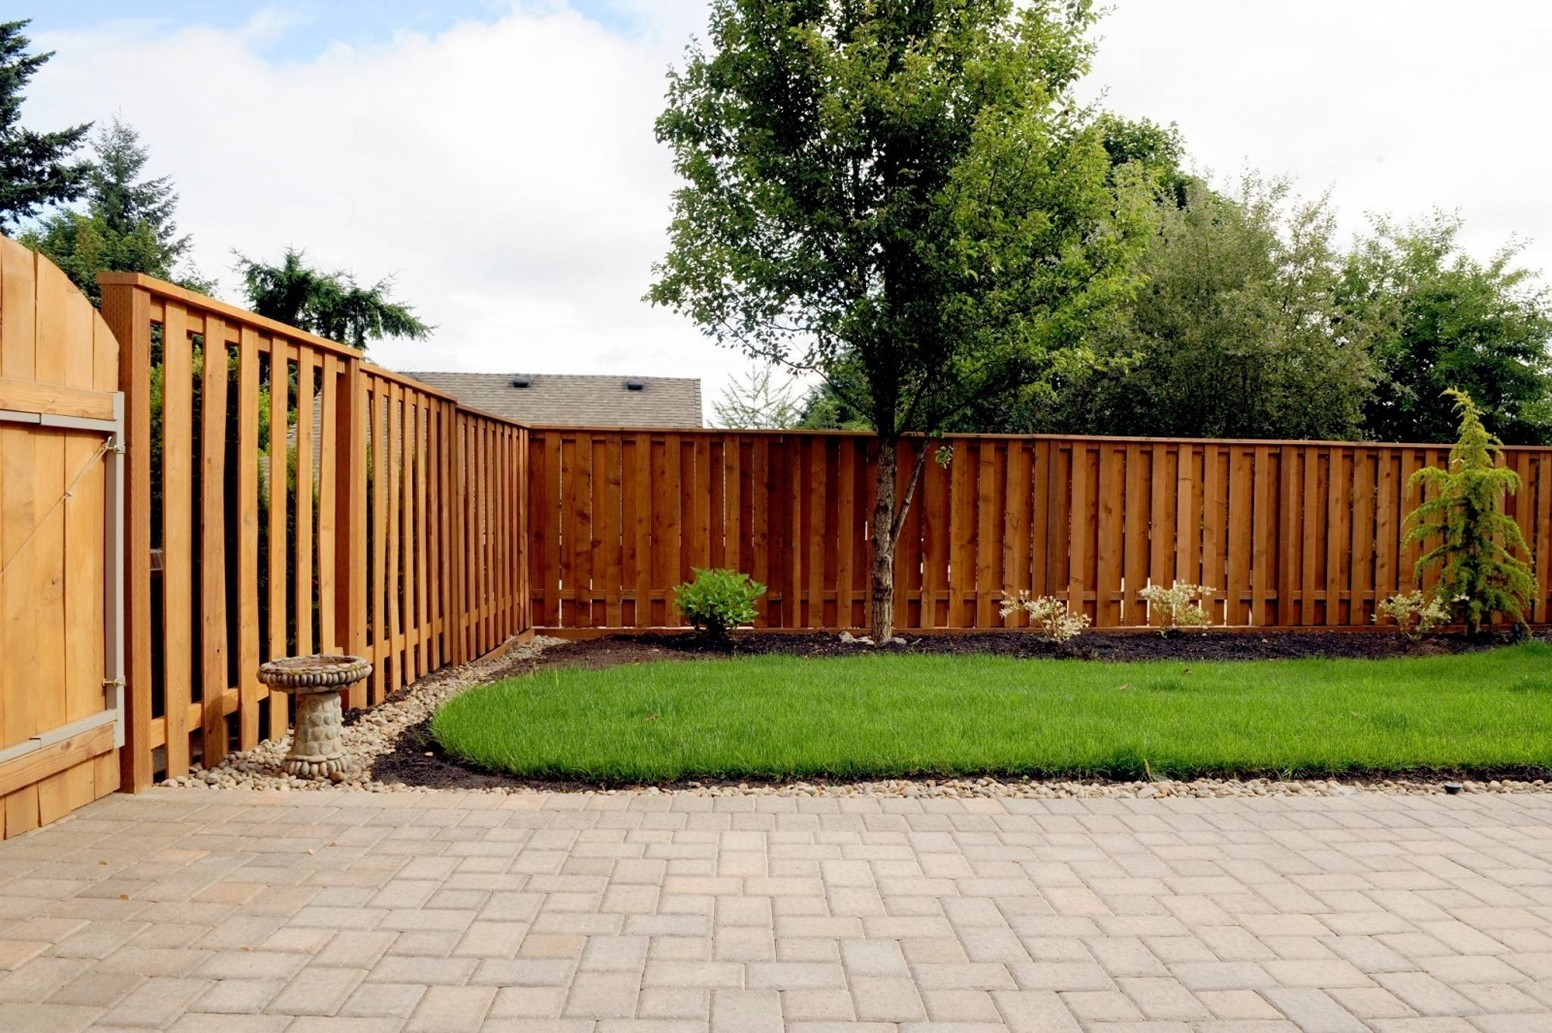 Cool Fence Ideas For Backyard Fence Ideas Site throughout Cool Fence Ideas For Backyard